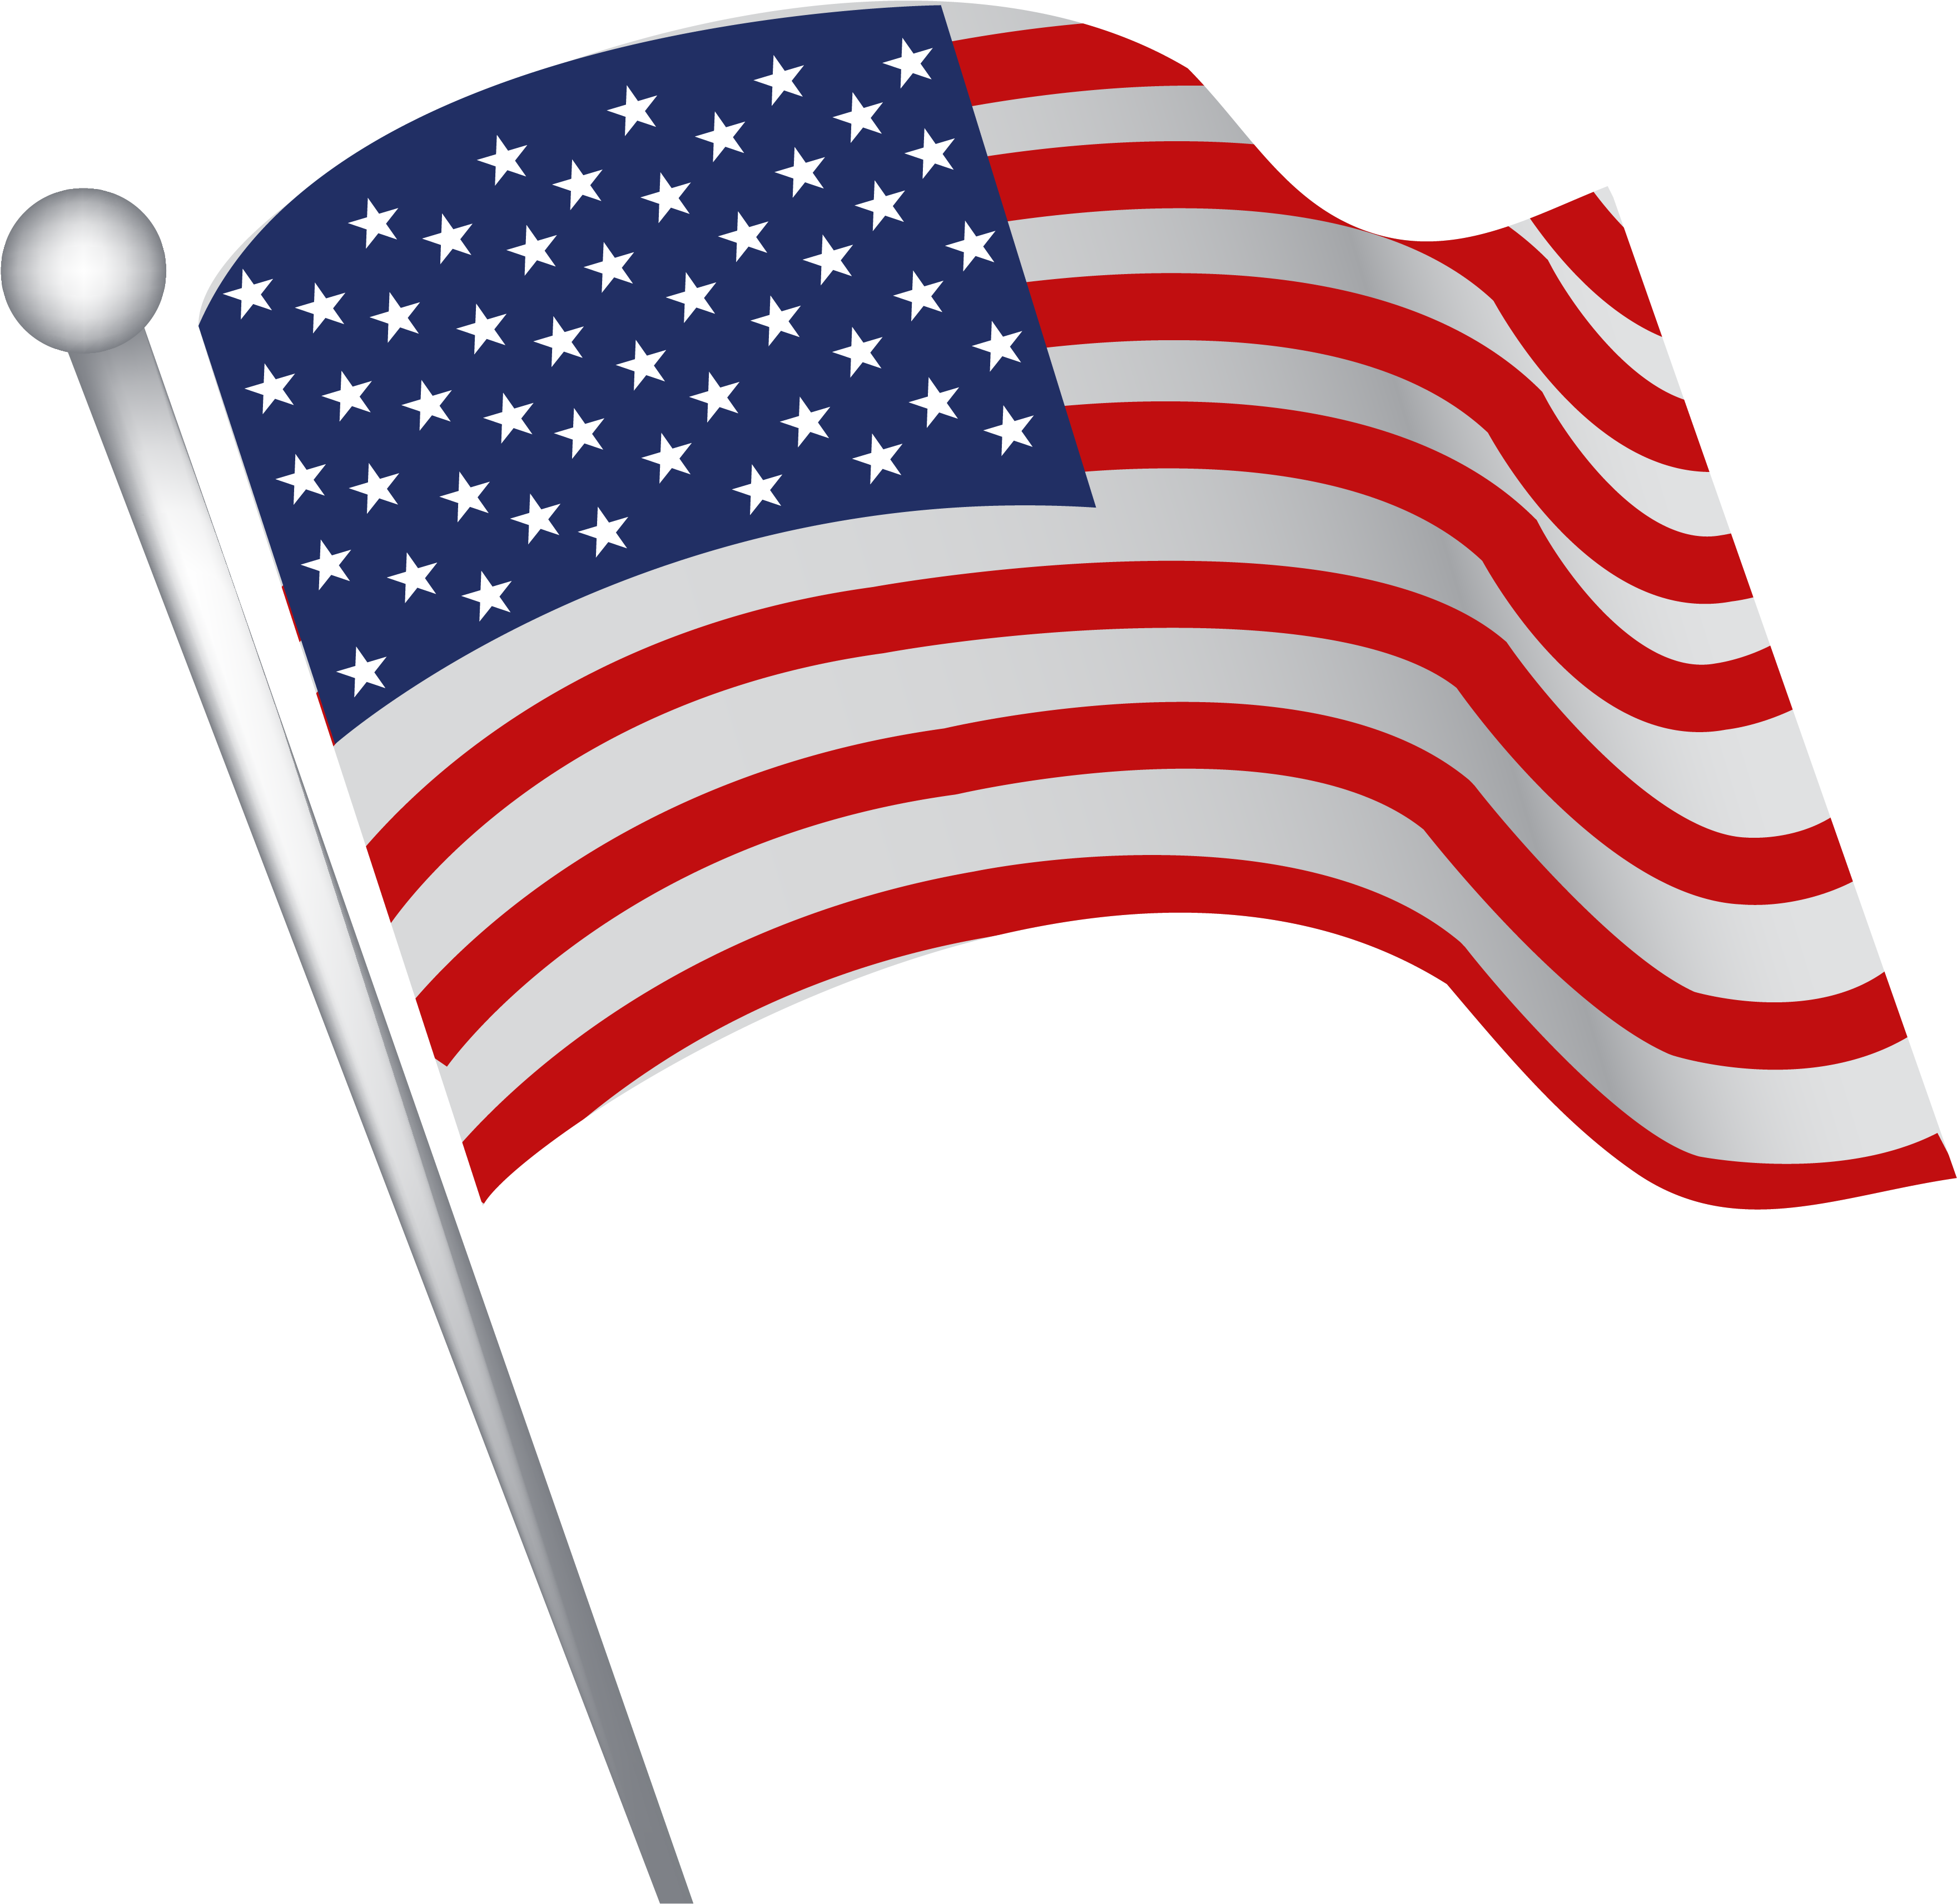 Transparent Fourth Of July Banner Clipart American Flag Waving Cartoon Png Download Full Size Clipart 5759010 Pinclipart